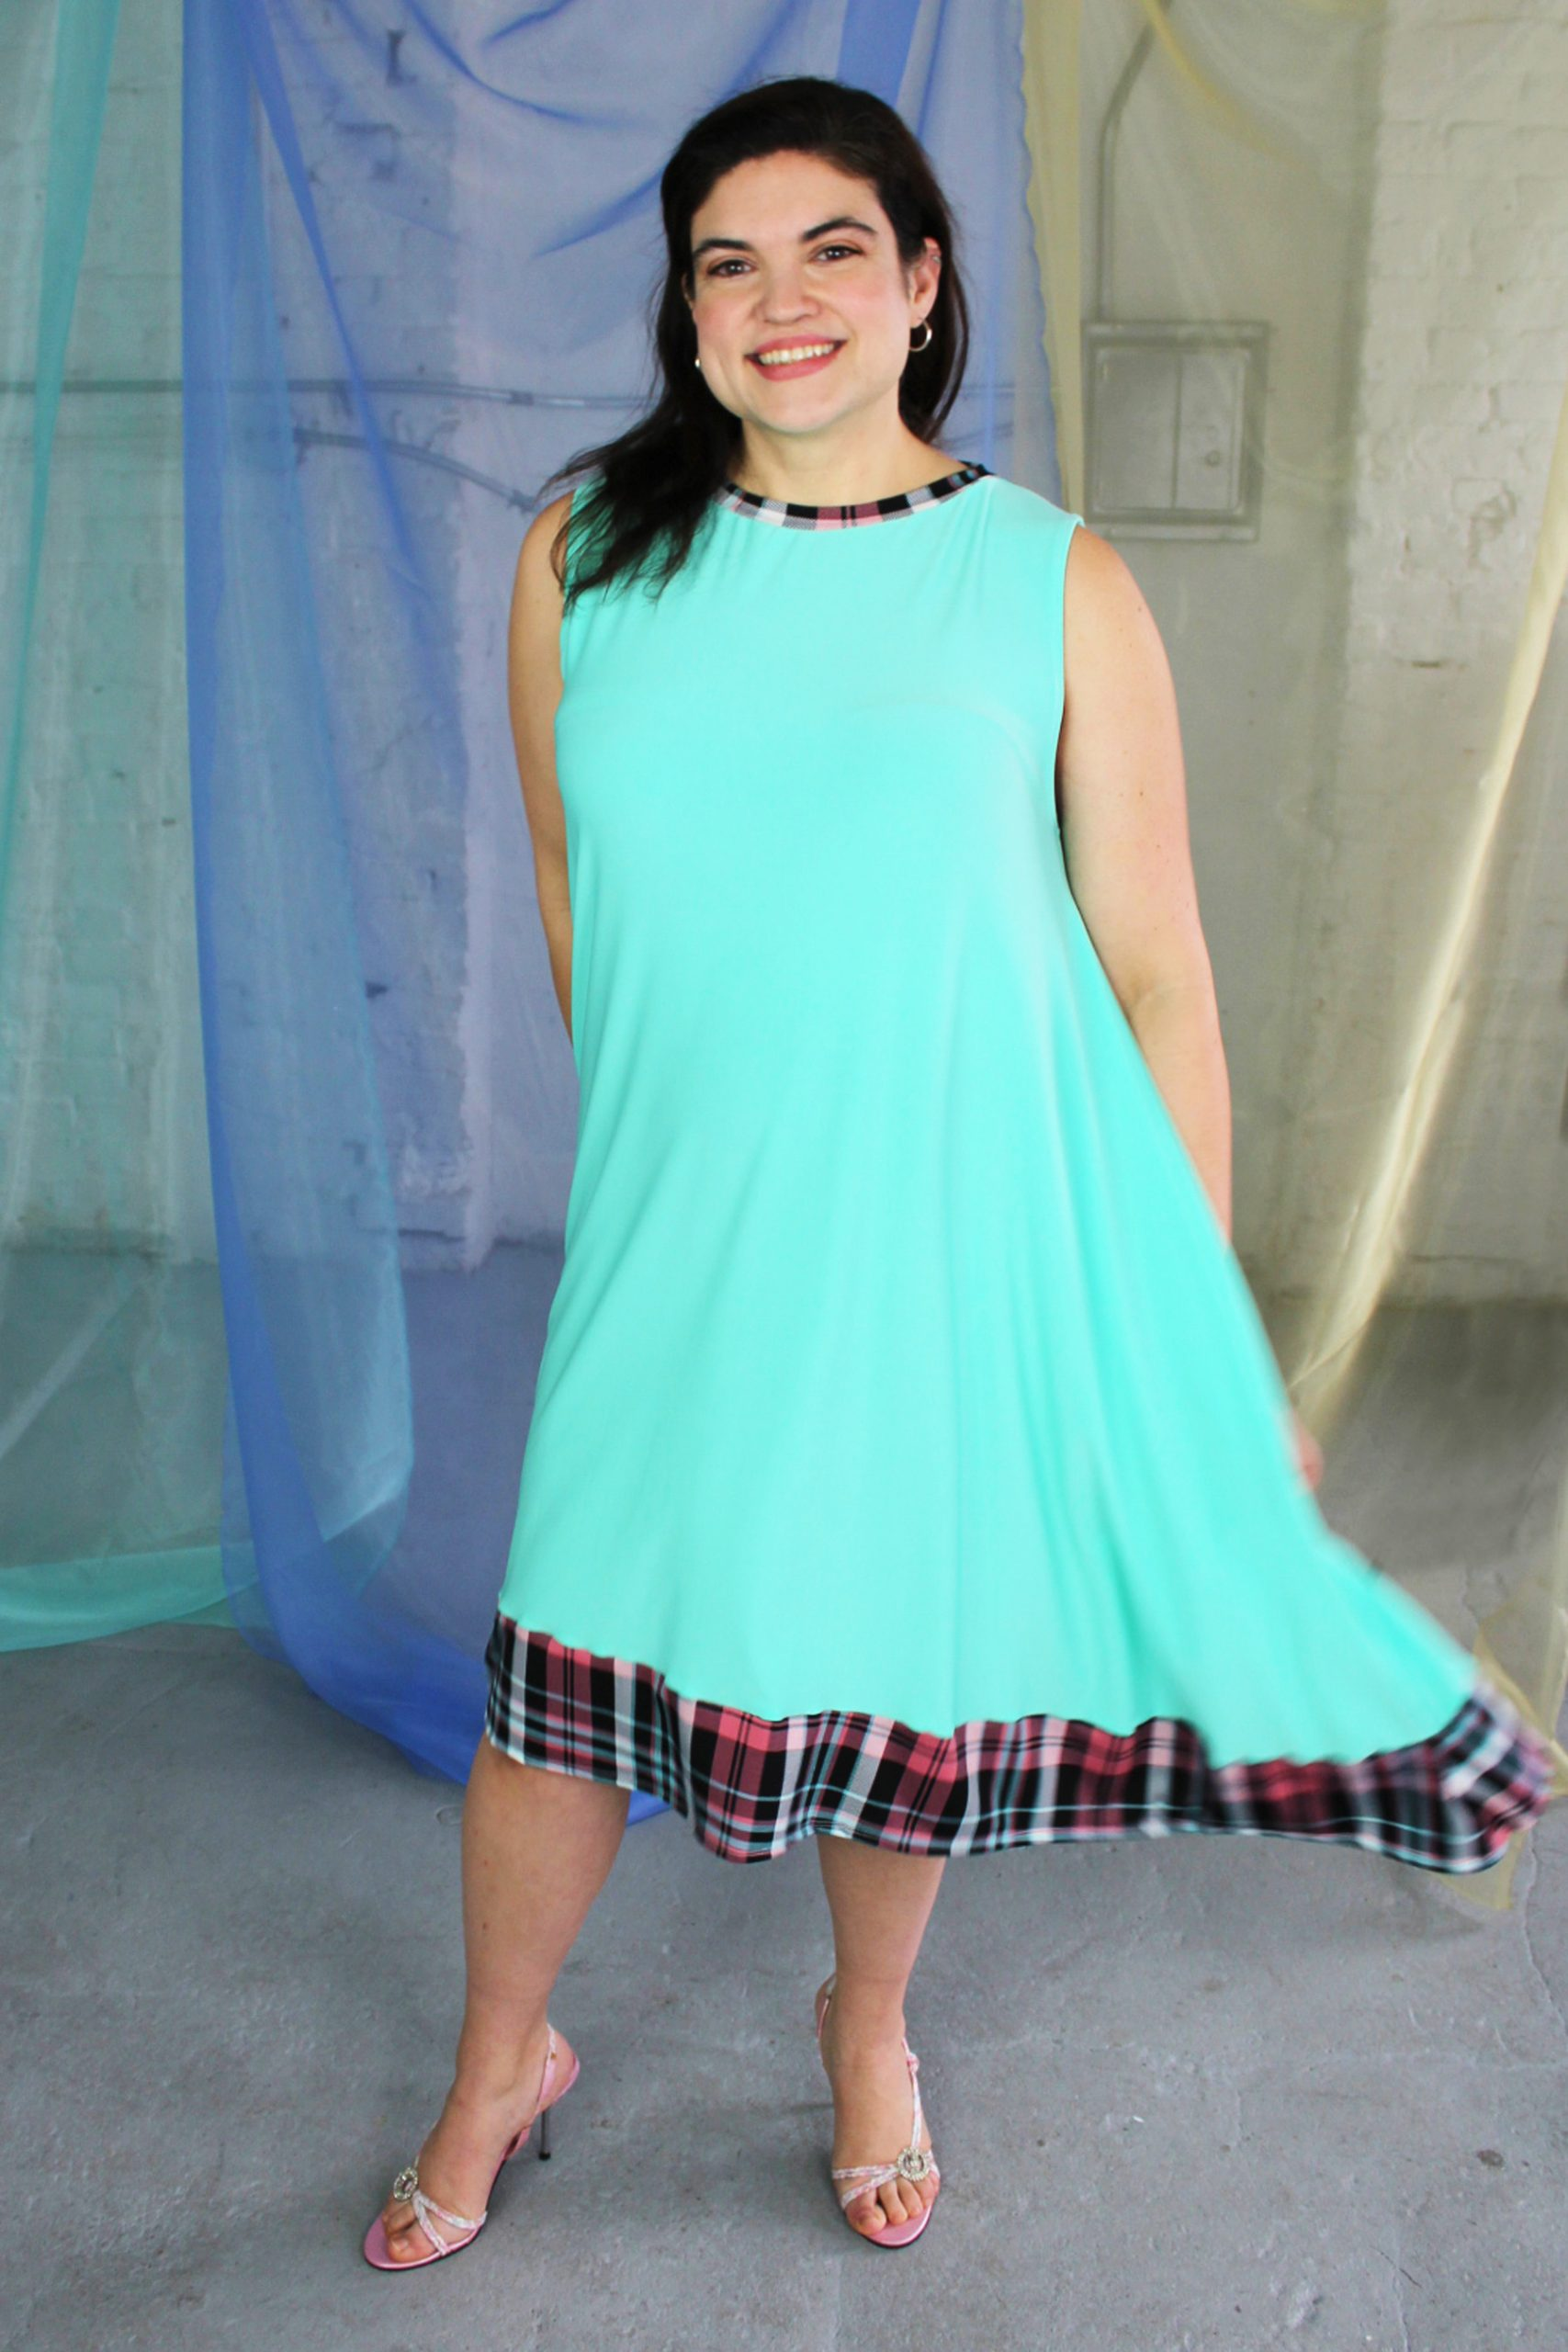 Inbetweenie white brunette model wearing seafoam blue green swing dress with pink plaid trim, ethically handmade in NYC